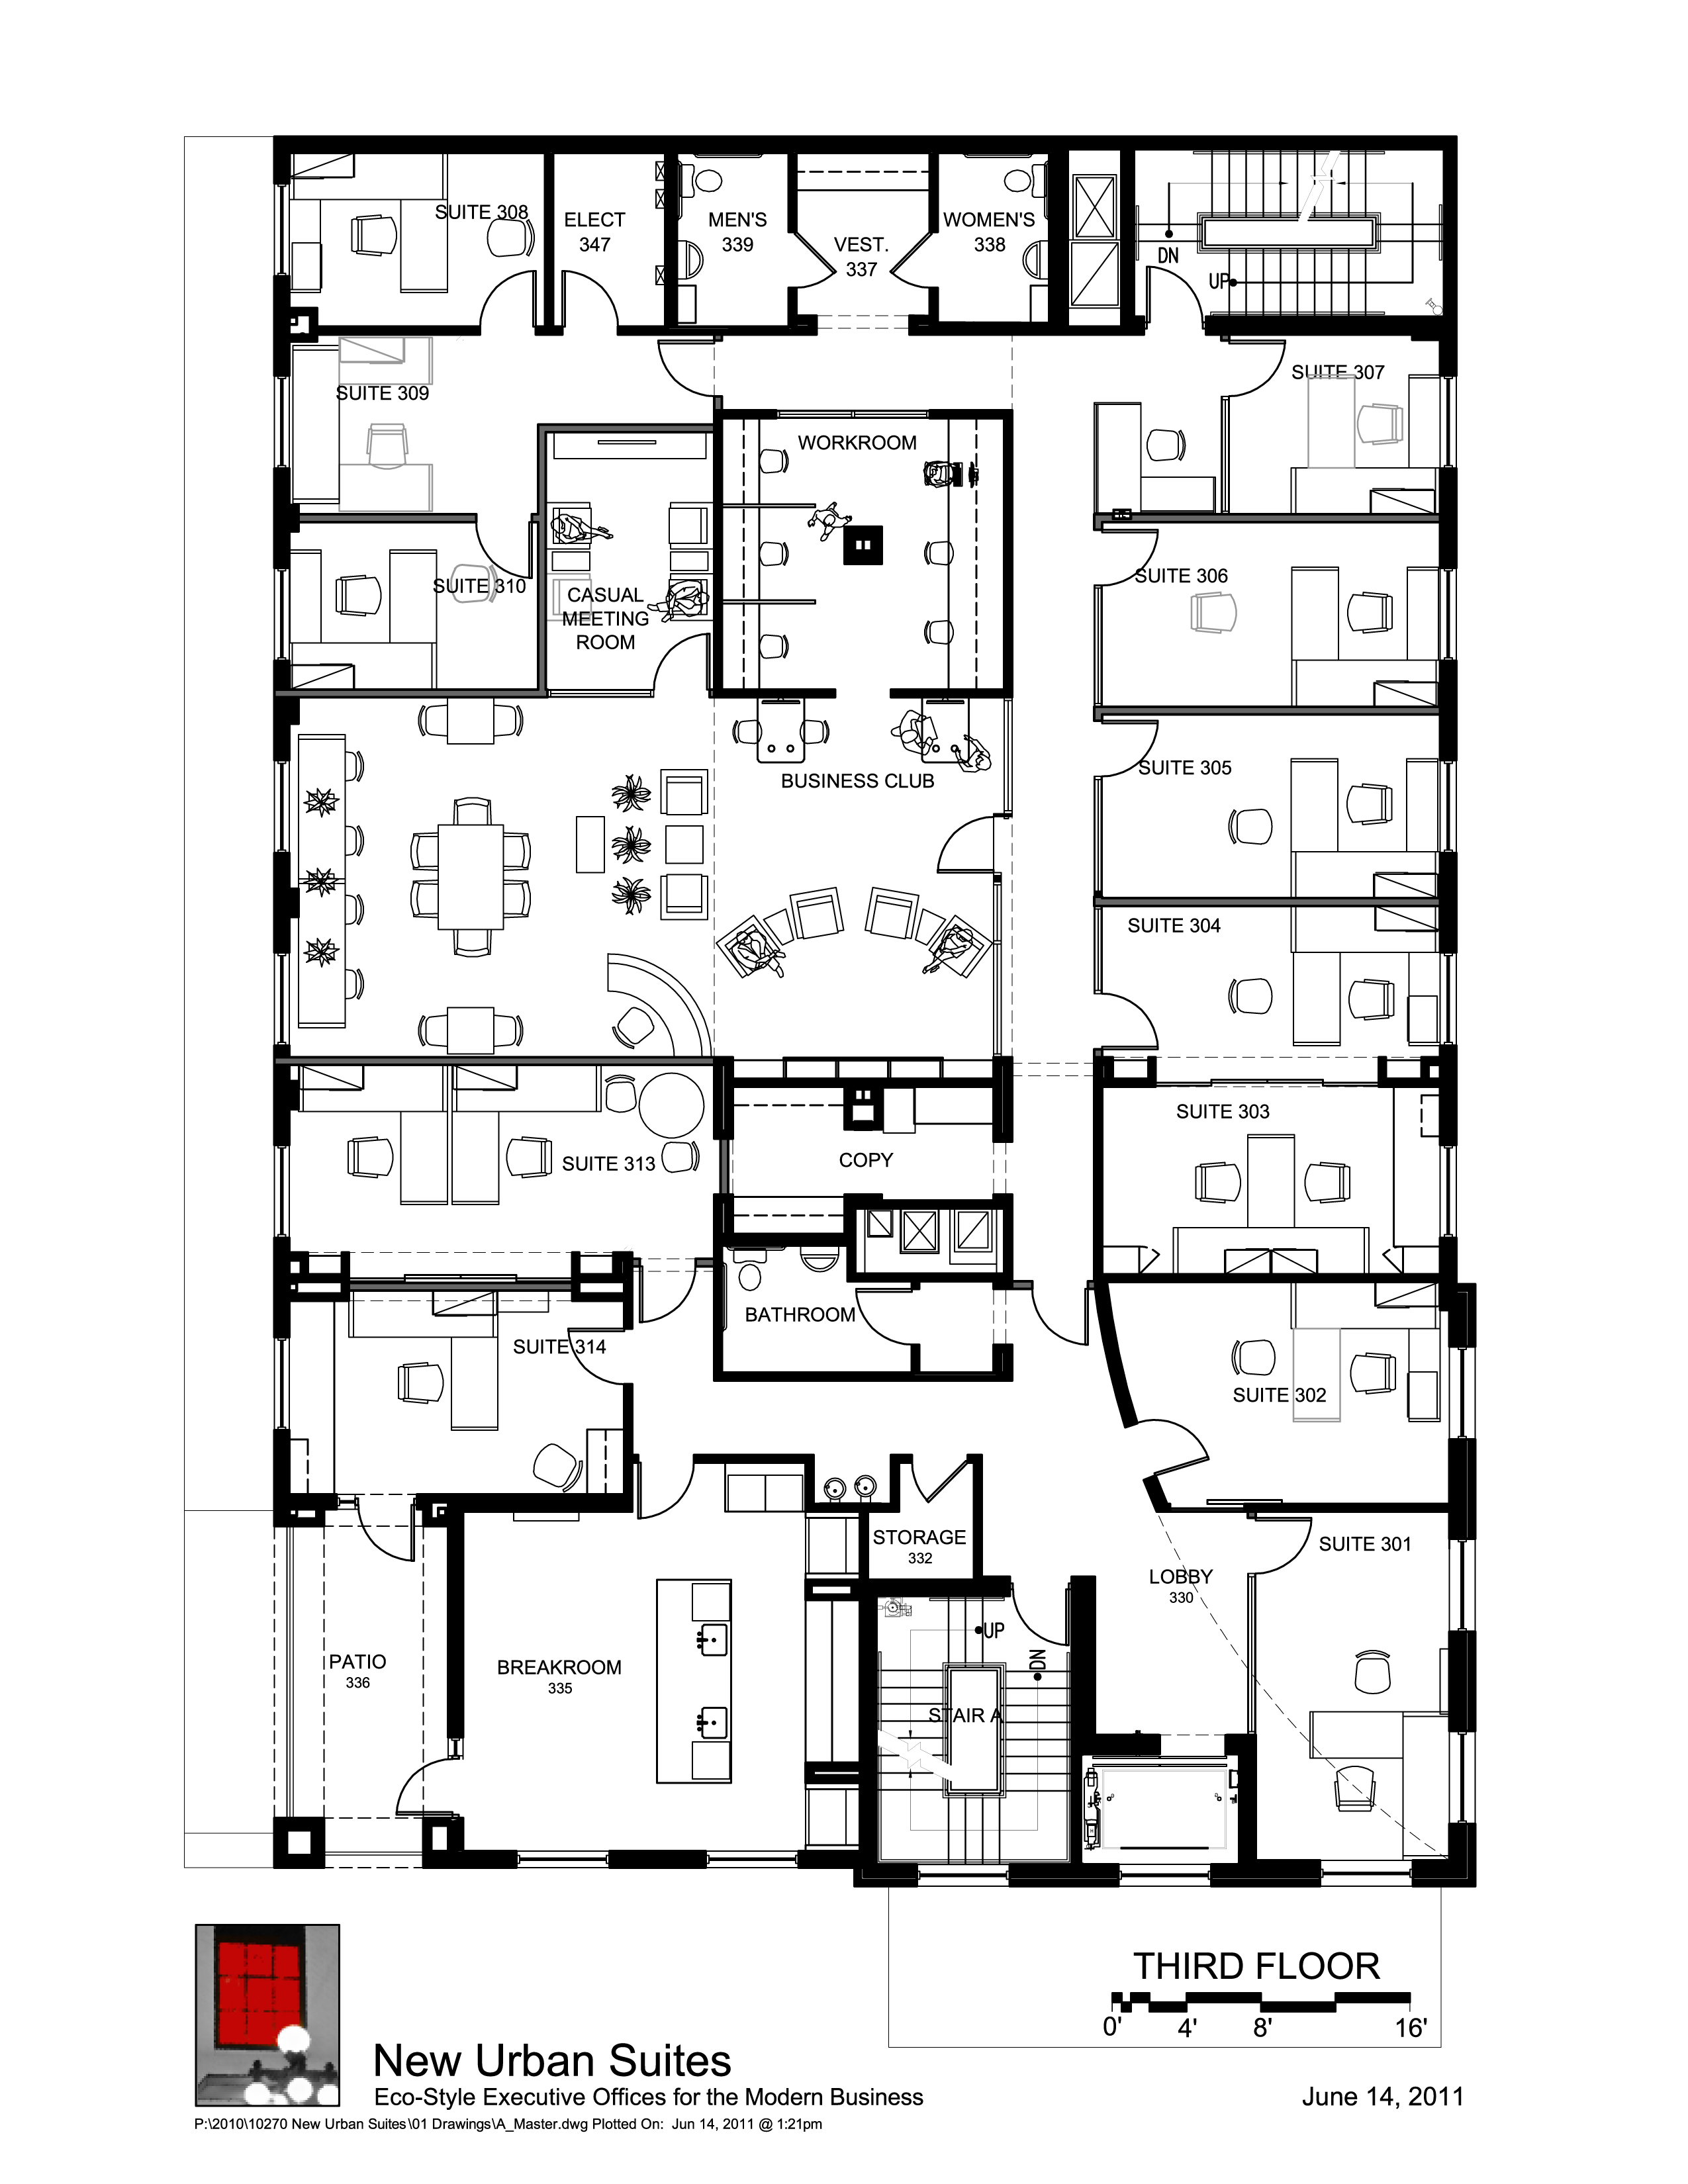 Our 3rd floor office floor plans are totally different